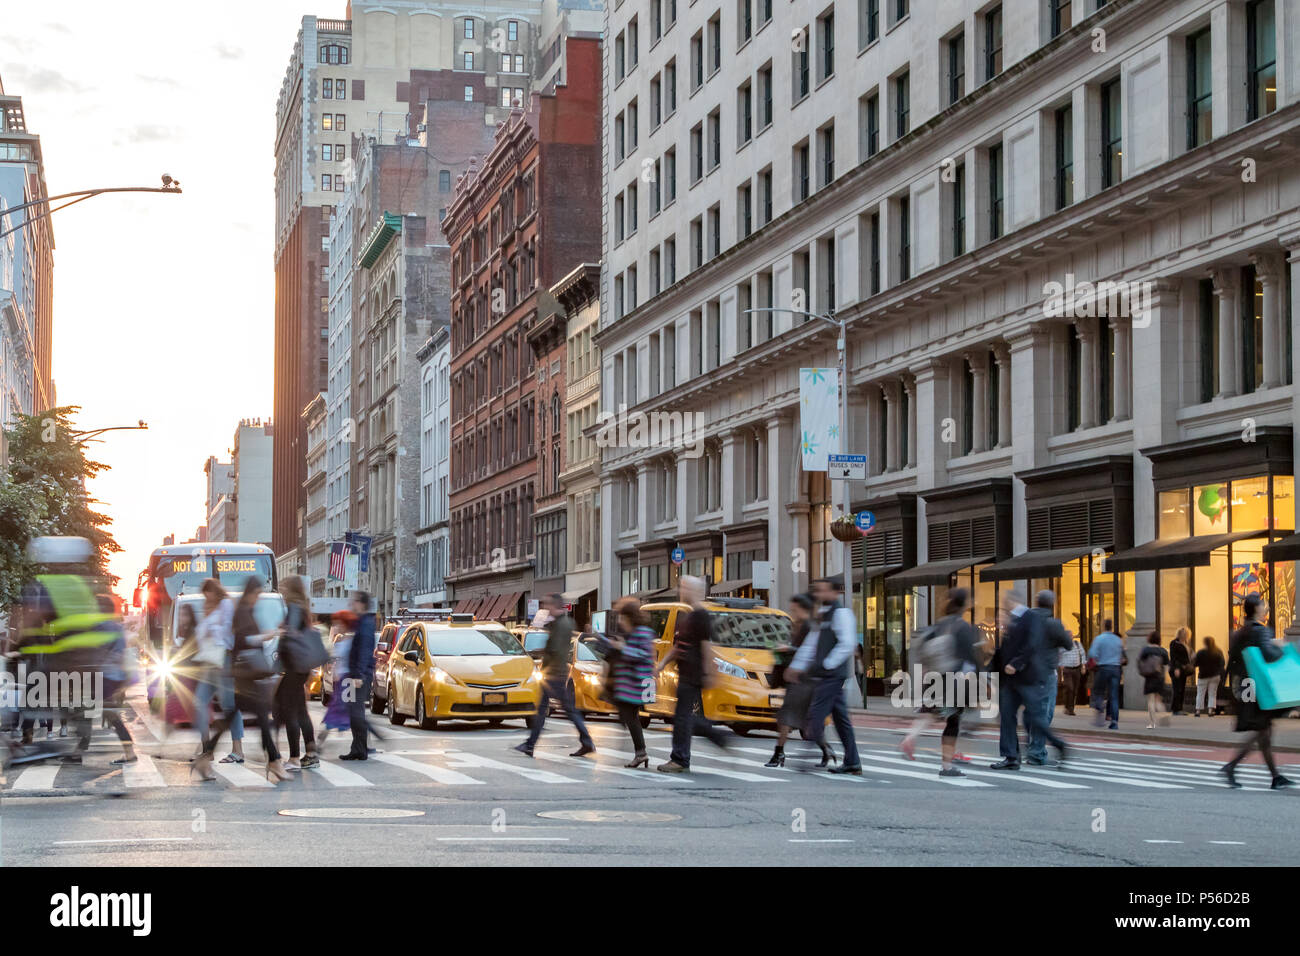 Fast paced street scene with people walking across a busy intersection on Broadway in Manhattan New York City - Stock Image